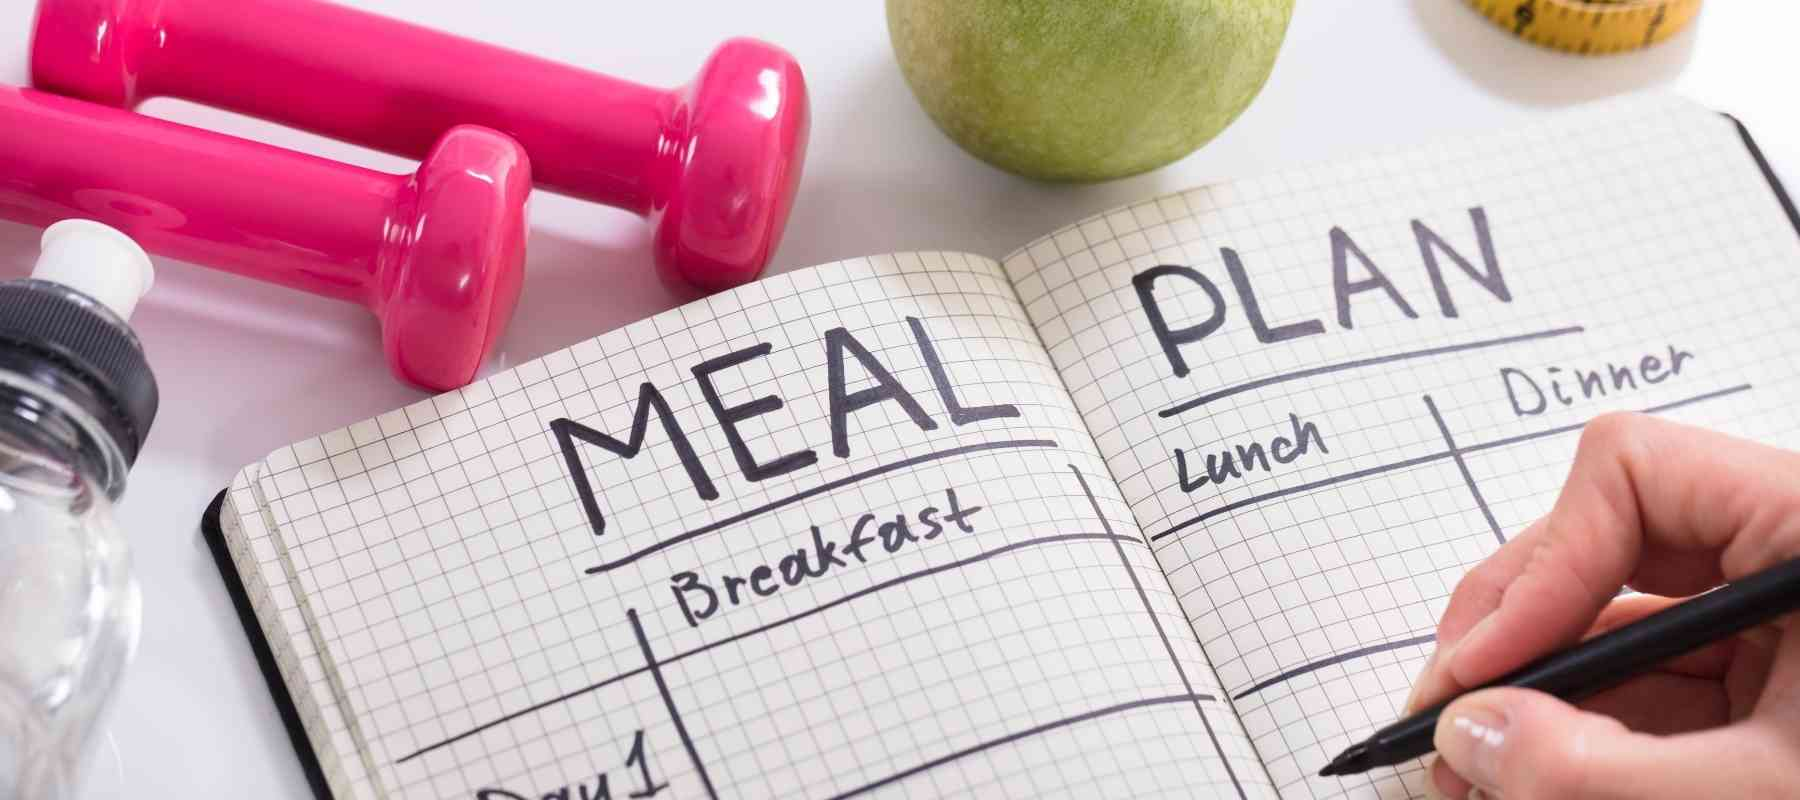 Save $10,000 in a Year - Meal Plan